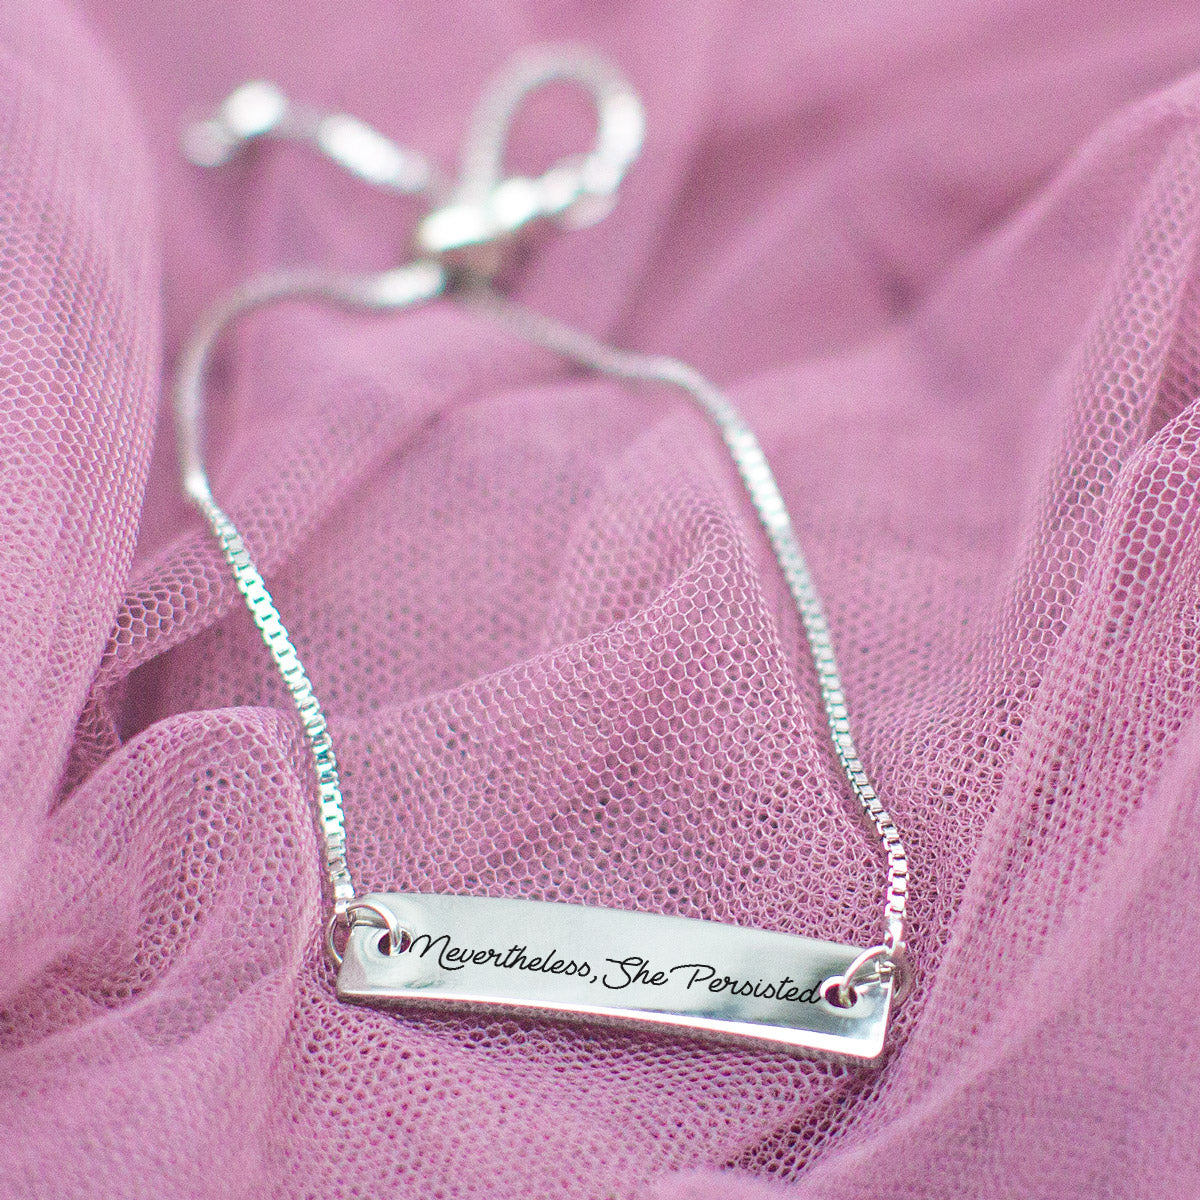 Nevertheless, She Persisted - Script Font Silver Bar Adjustable Bracelet - pipercleo.com